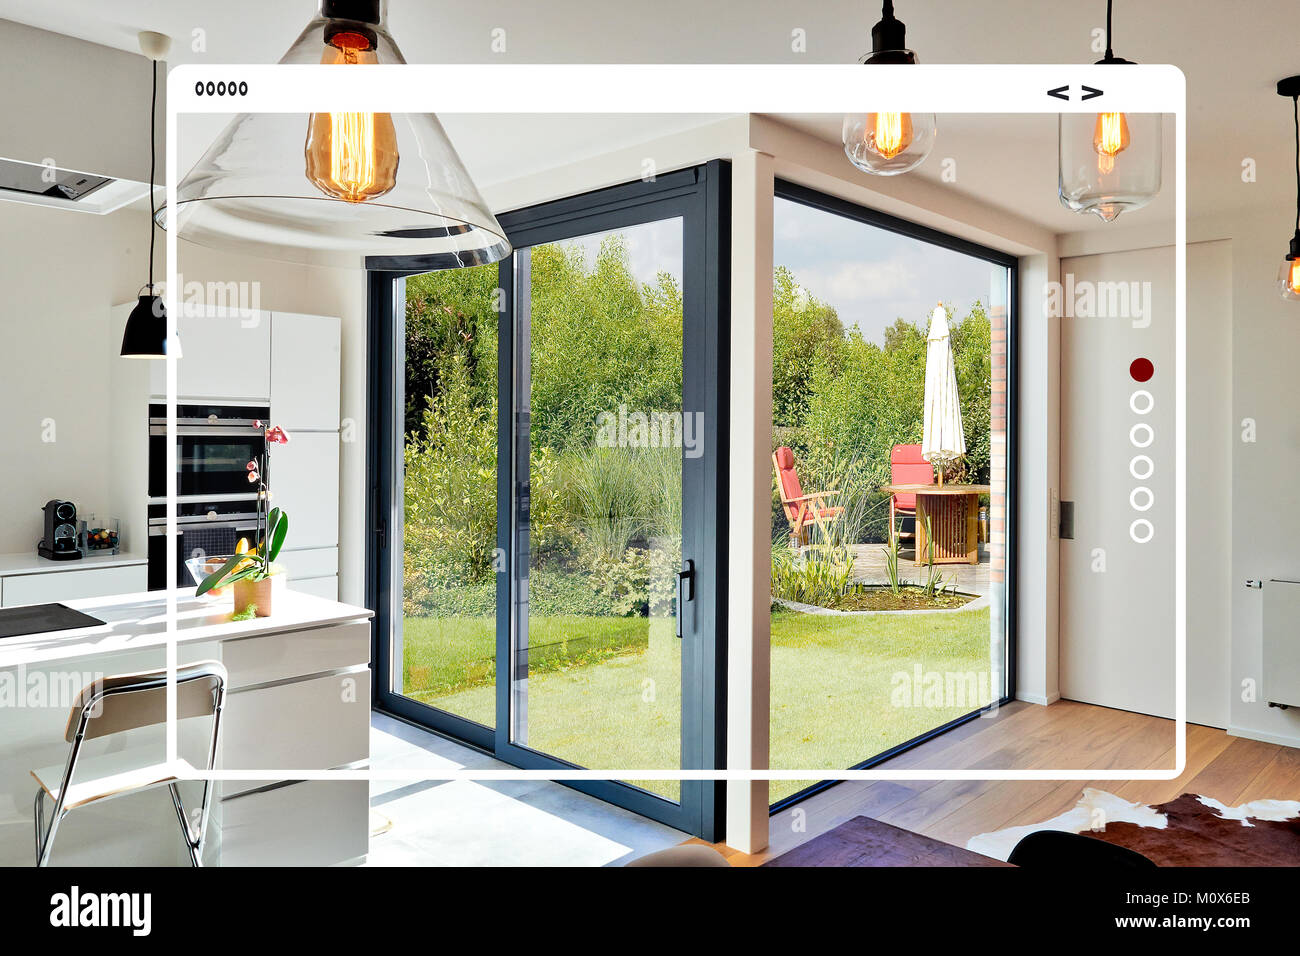 modern site web interface for gallery.open modern kitchen from loft